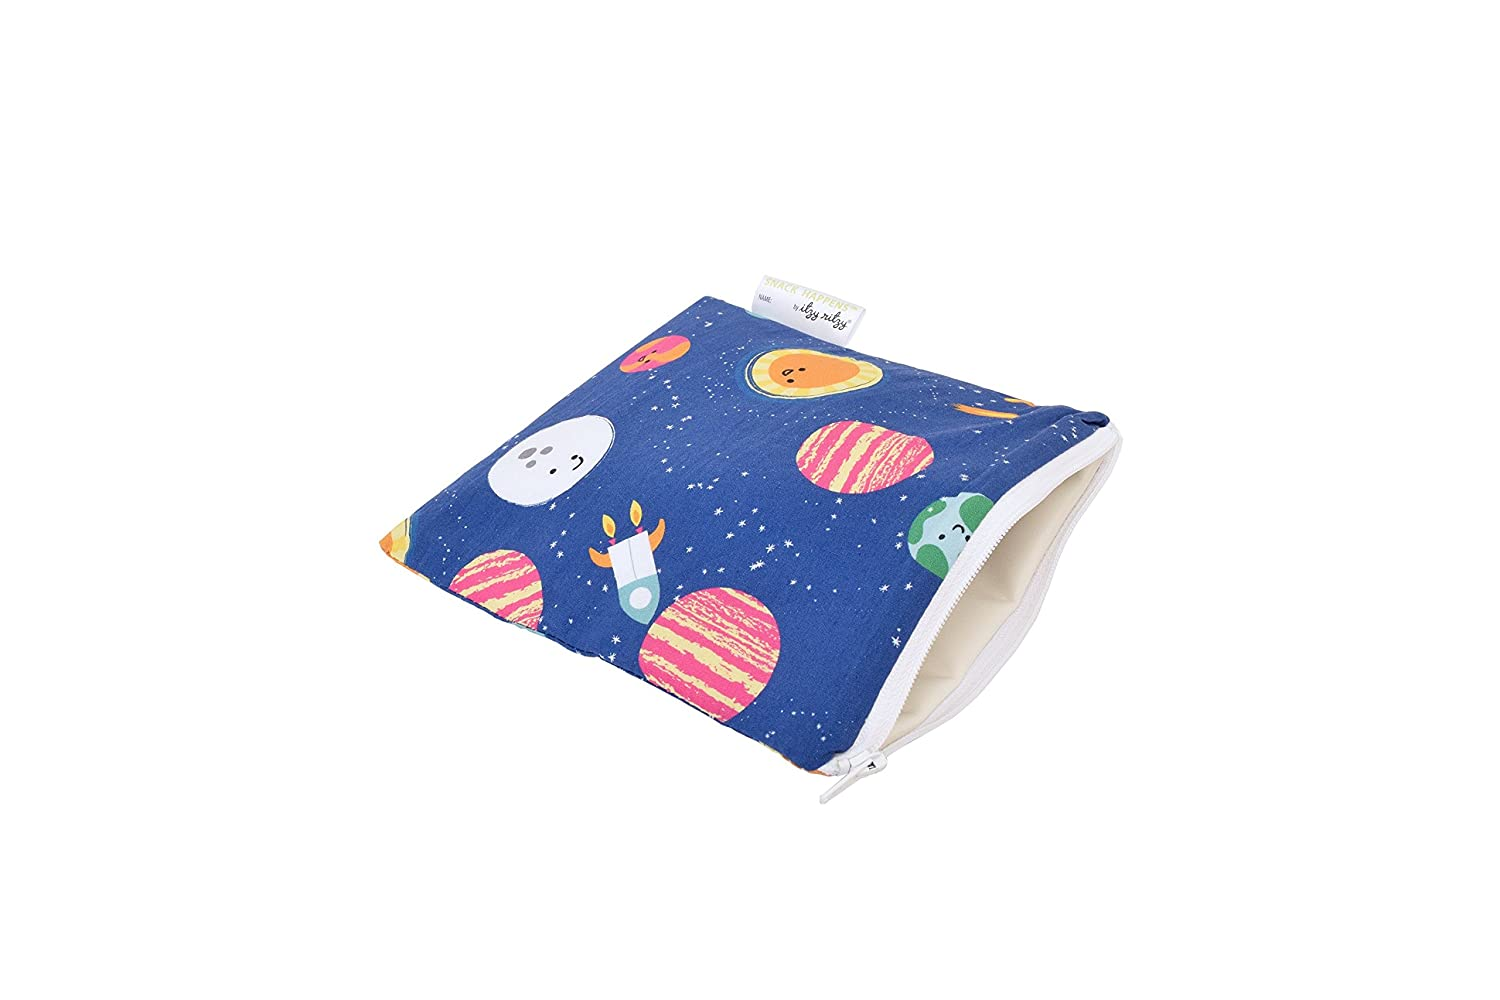 Itzy Ritzy IR-SWB8306 Snack Happens Reusable Snack and Everything Bag, Interstellar